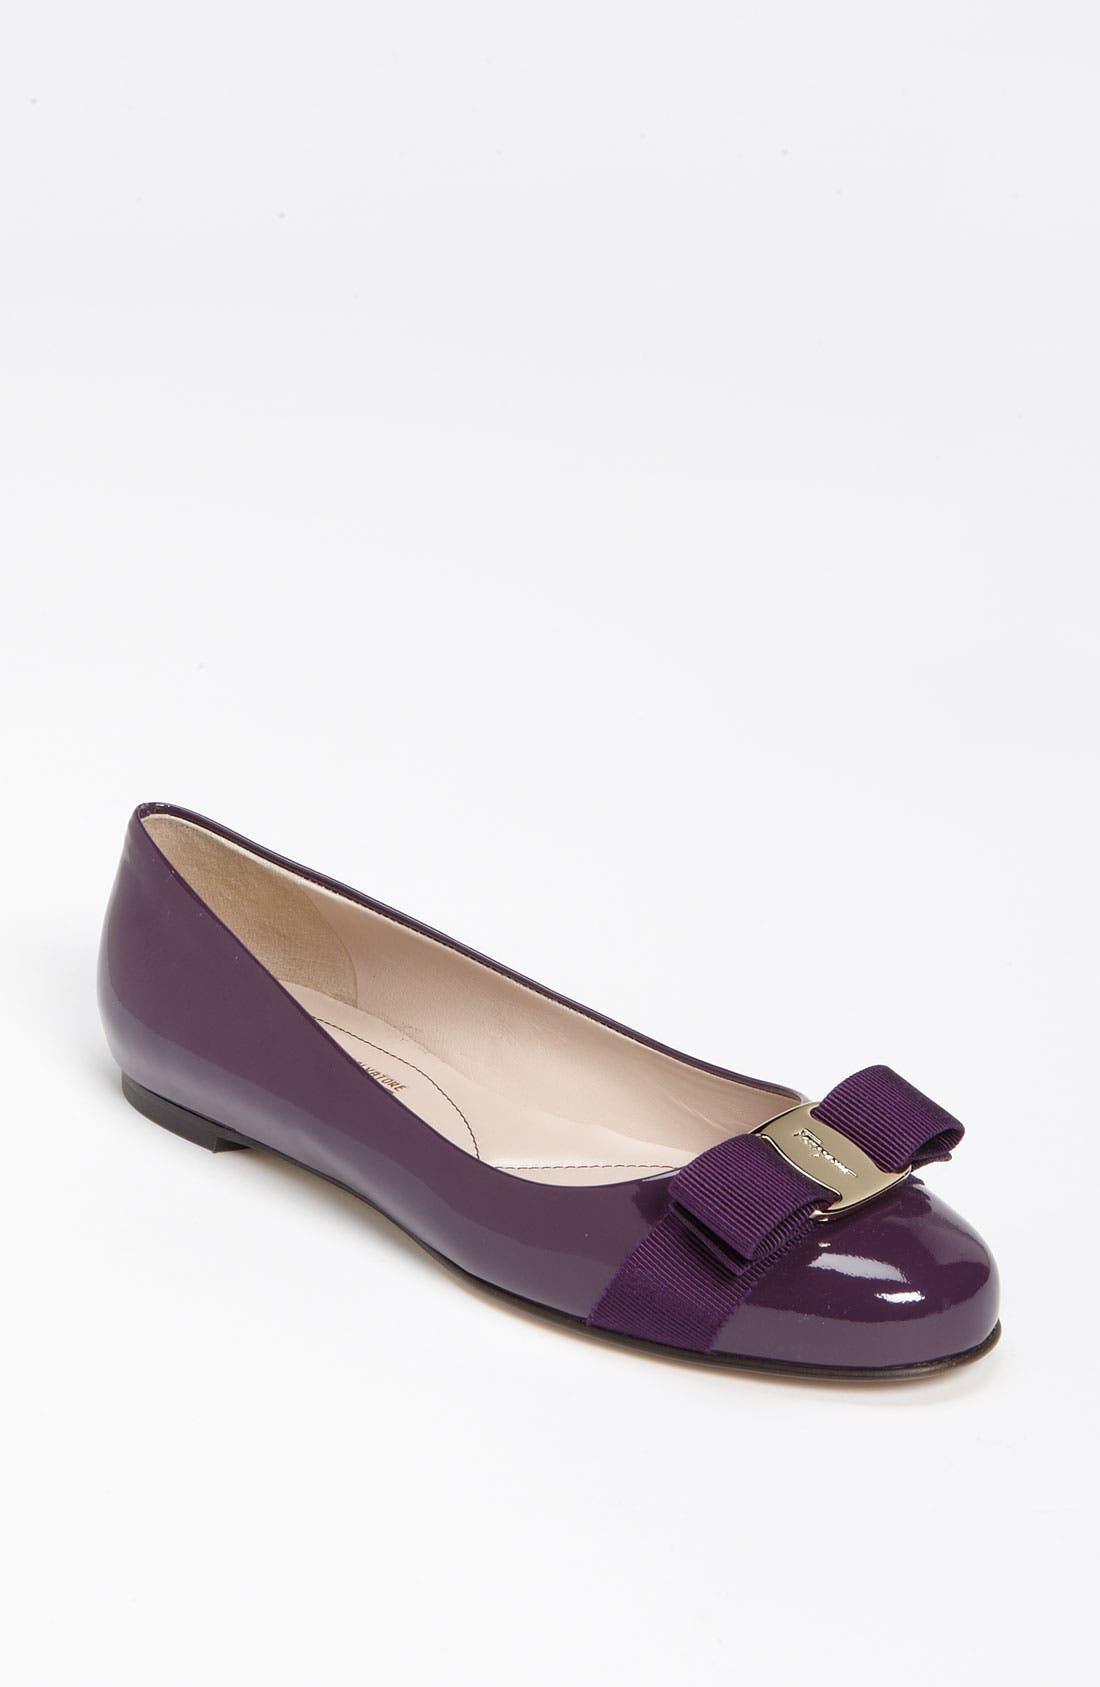 Alternate Image 1 Selected - Salvatore Ferragamo 'Varina' Bow Flat